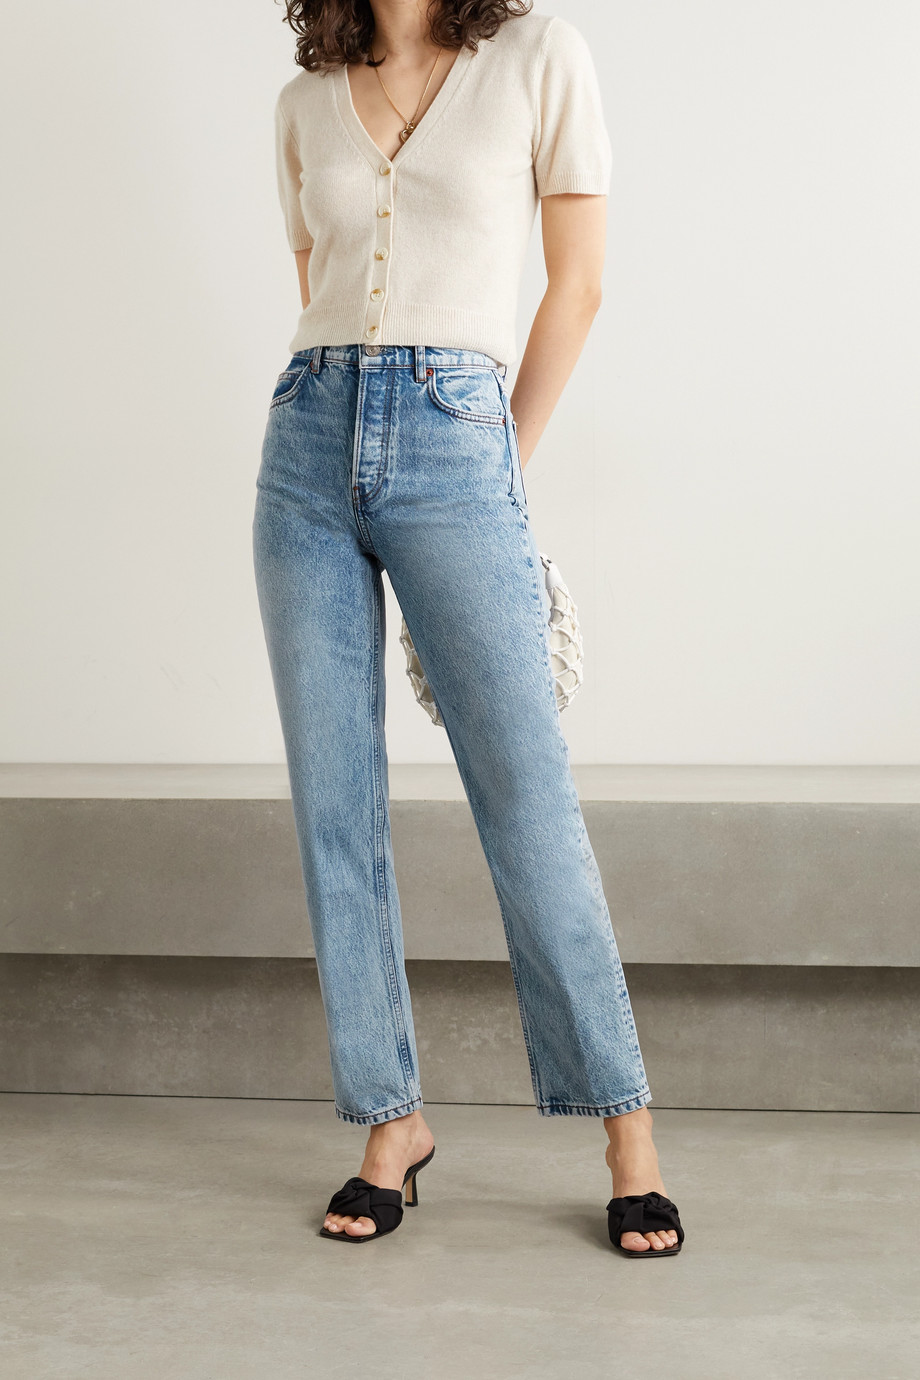 Reformation Jean droit taille haute Cynthia